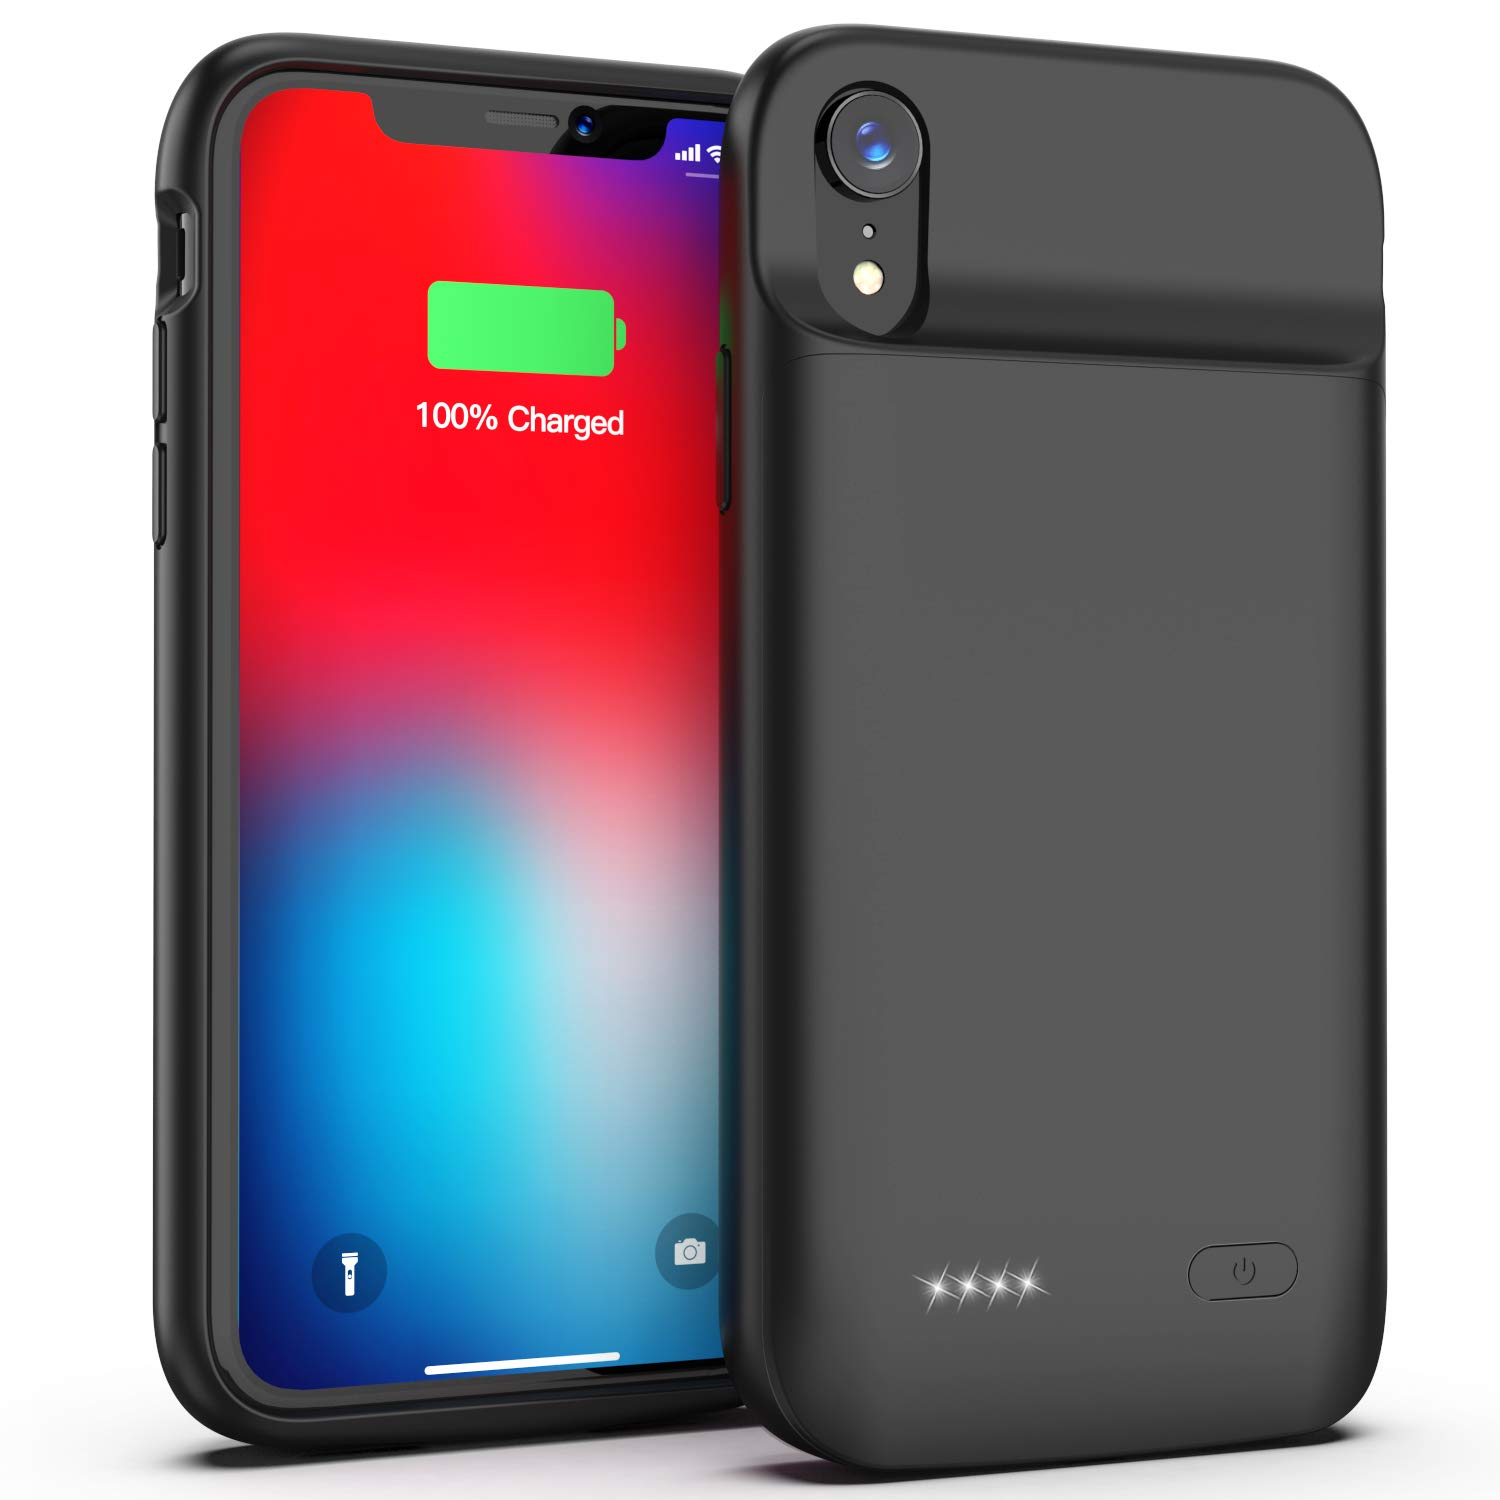 Swaller Battery Case for iPhone XR, Slim Protective Charger Case for iPhone XR Extended Battery Case, 5000mAh Rechargeable Charging Case Compatible with iPhone XR (Black)